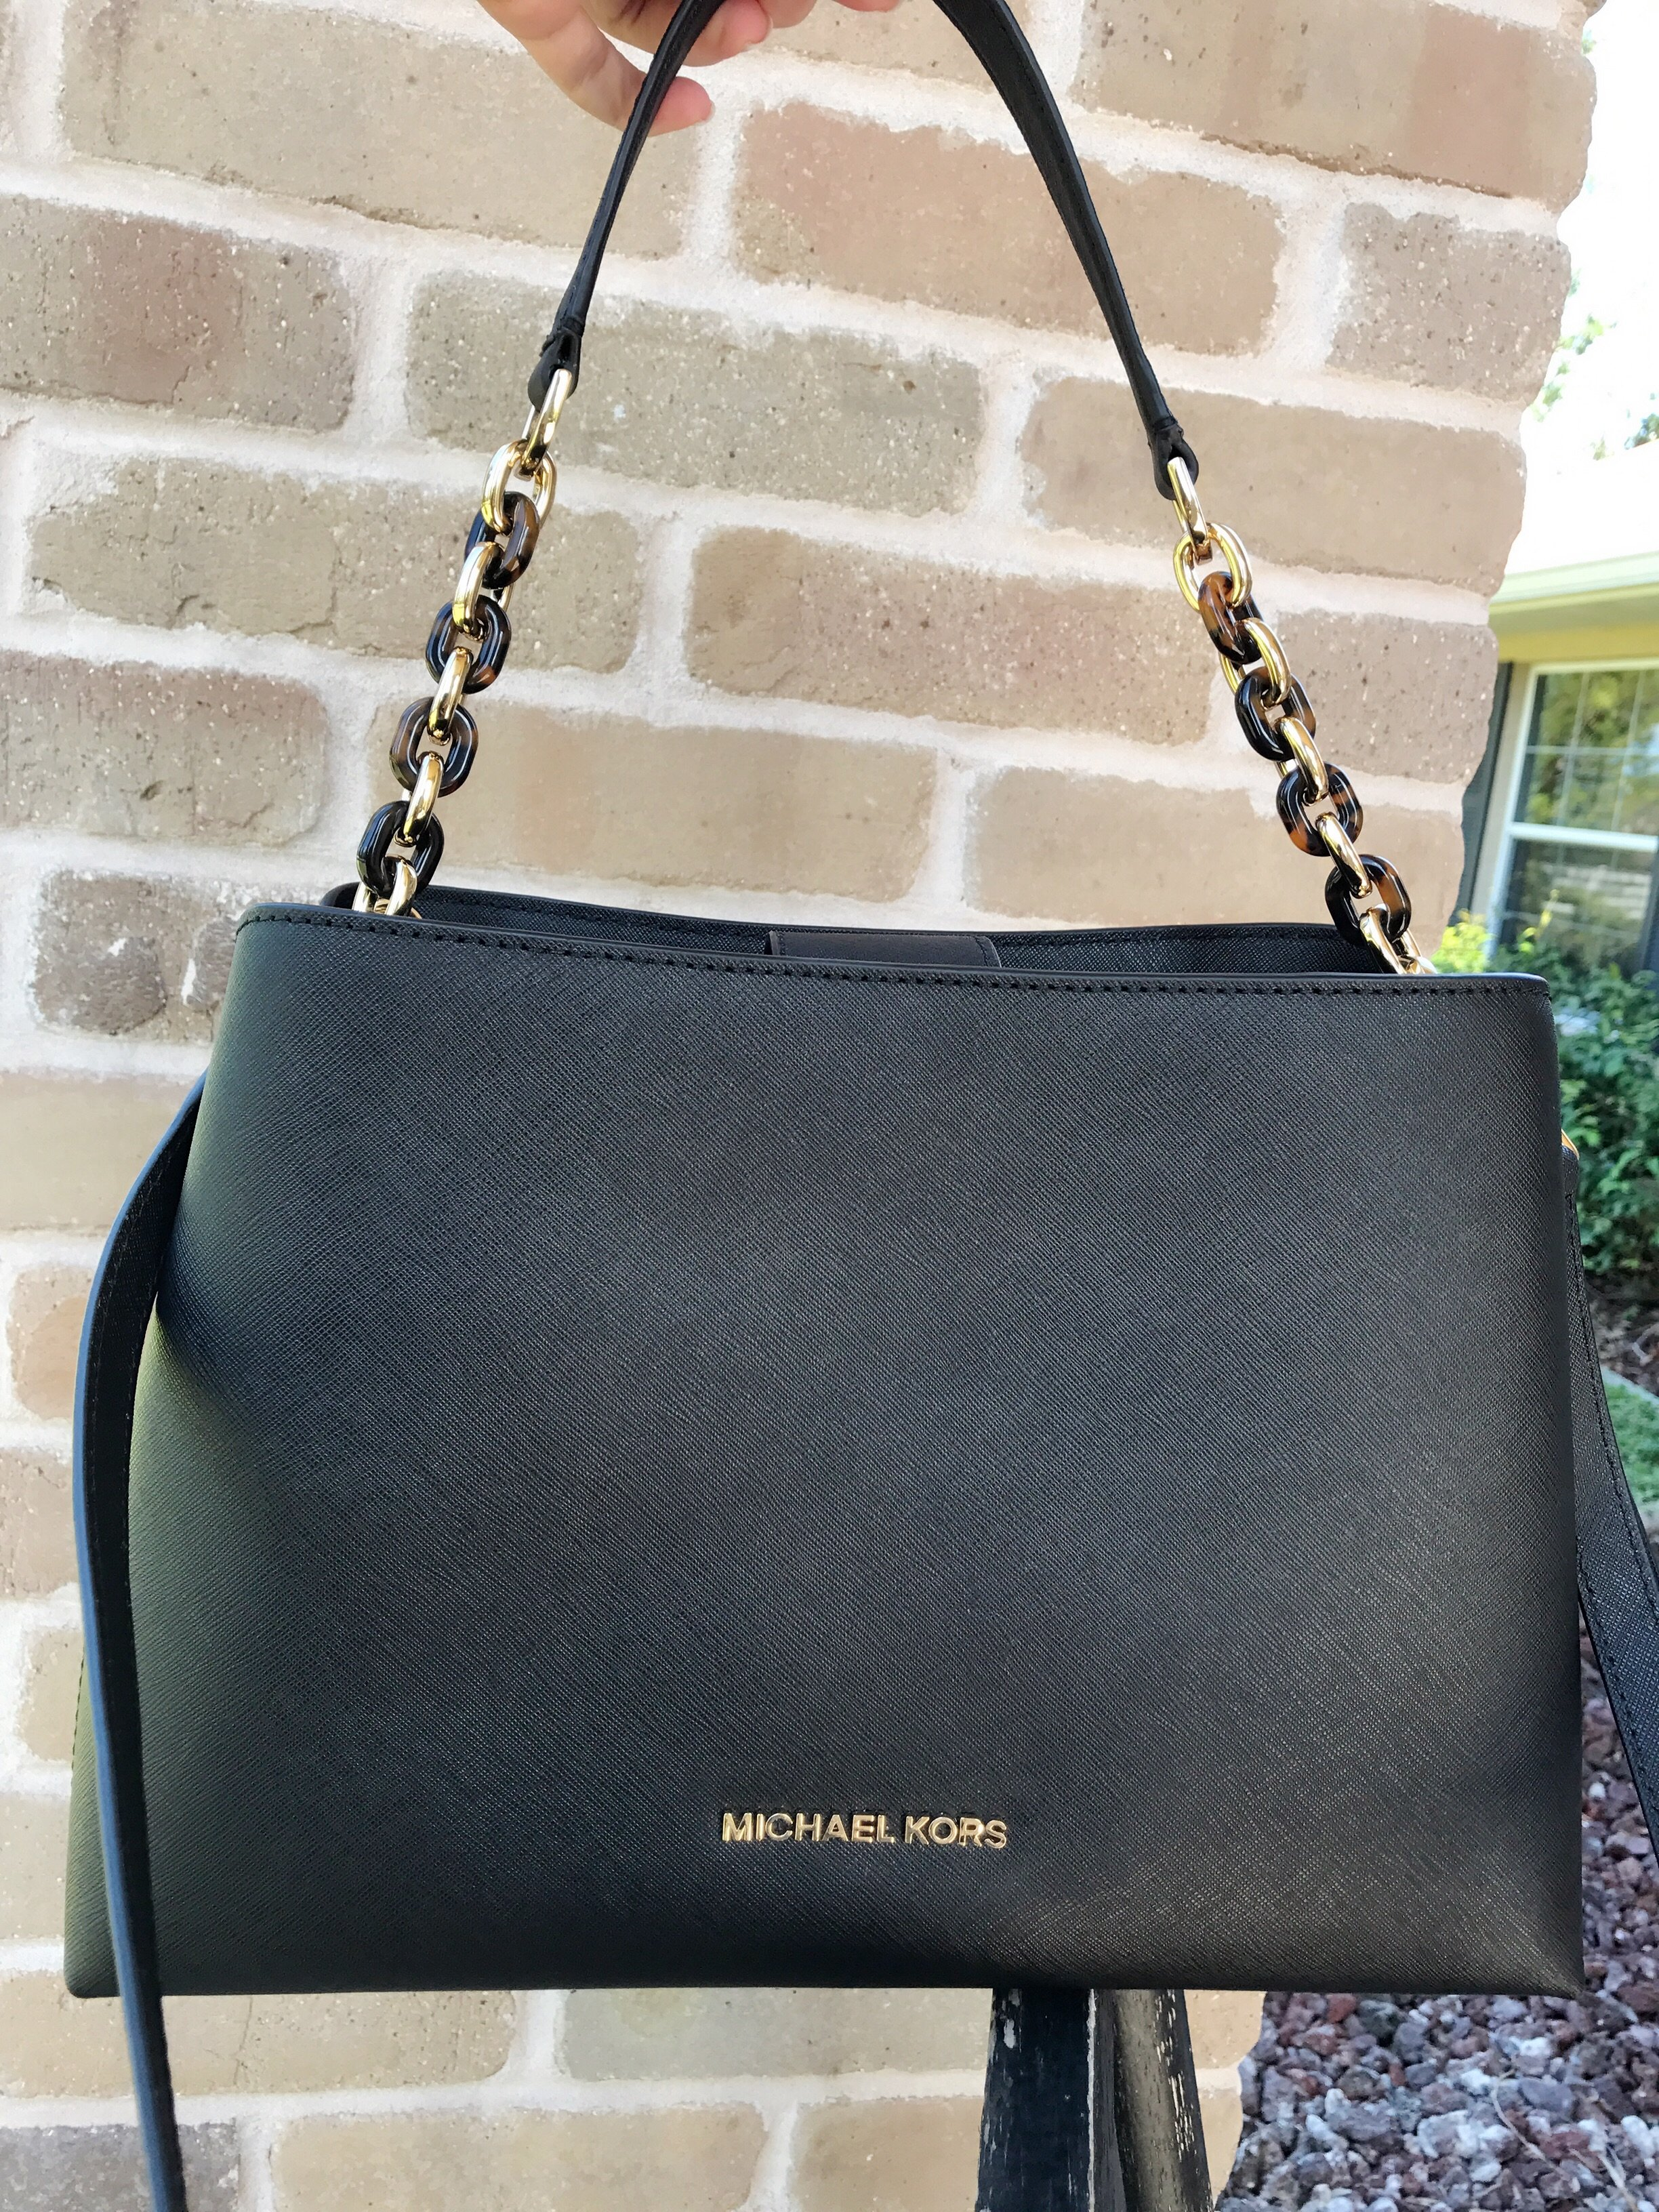 f1fbbe5c2ed4 mk bags outlet sale michael kors bags ebay philippines - Rescue Earth